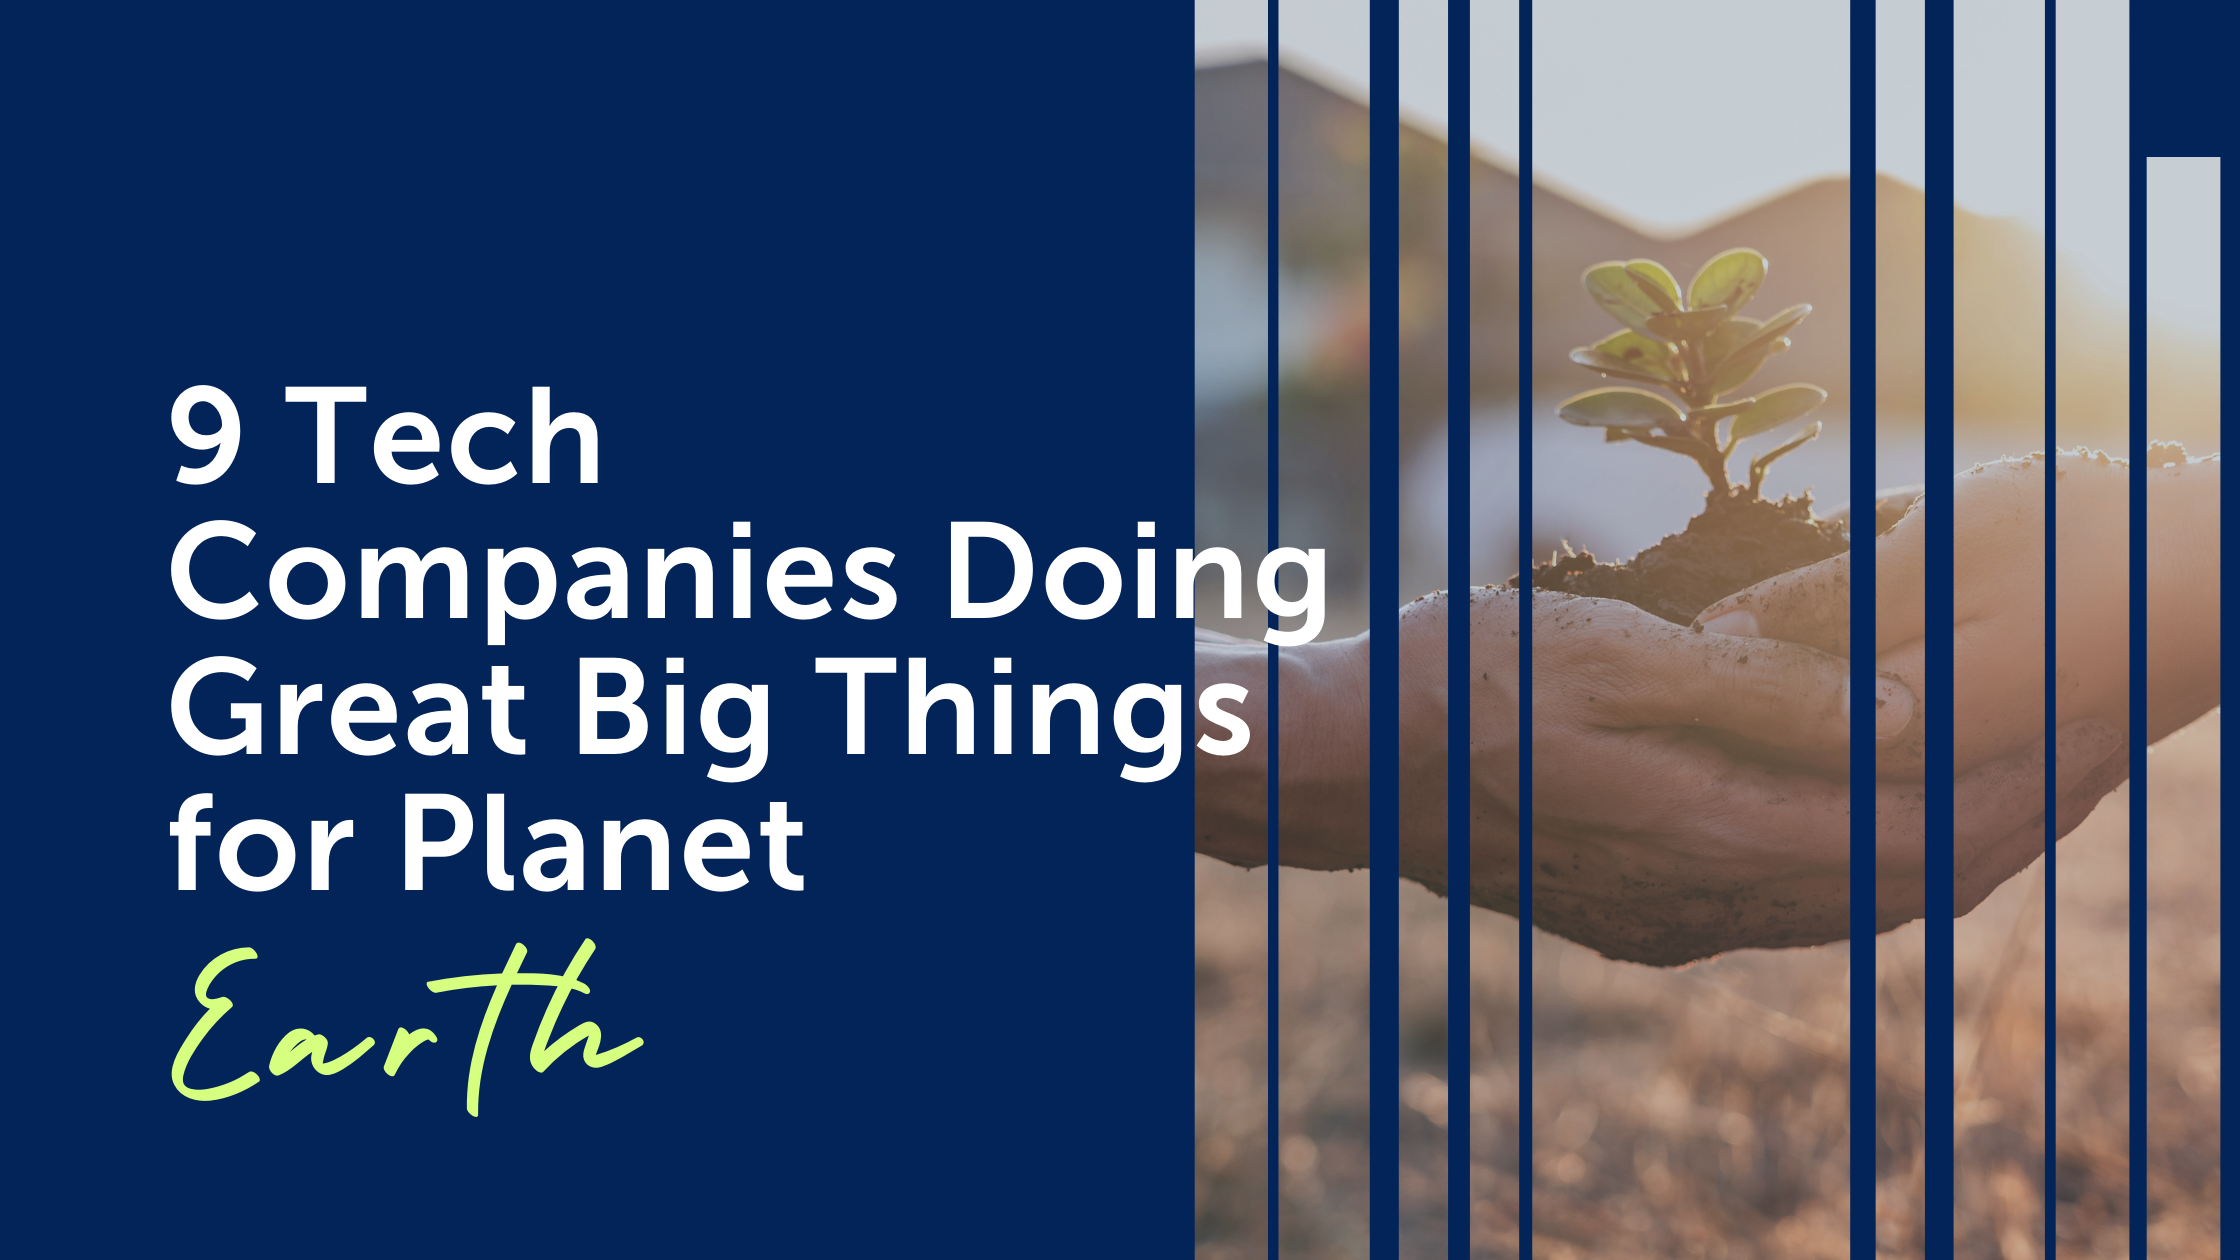 9 Tech Companies Doing Great Big Things for Planet Earth with photo of hands holding seedling